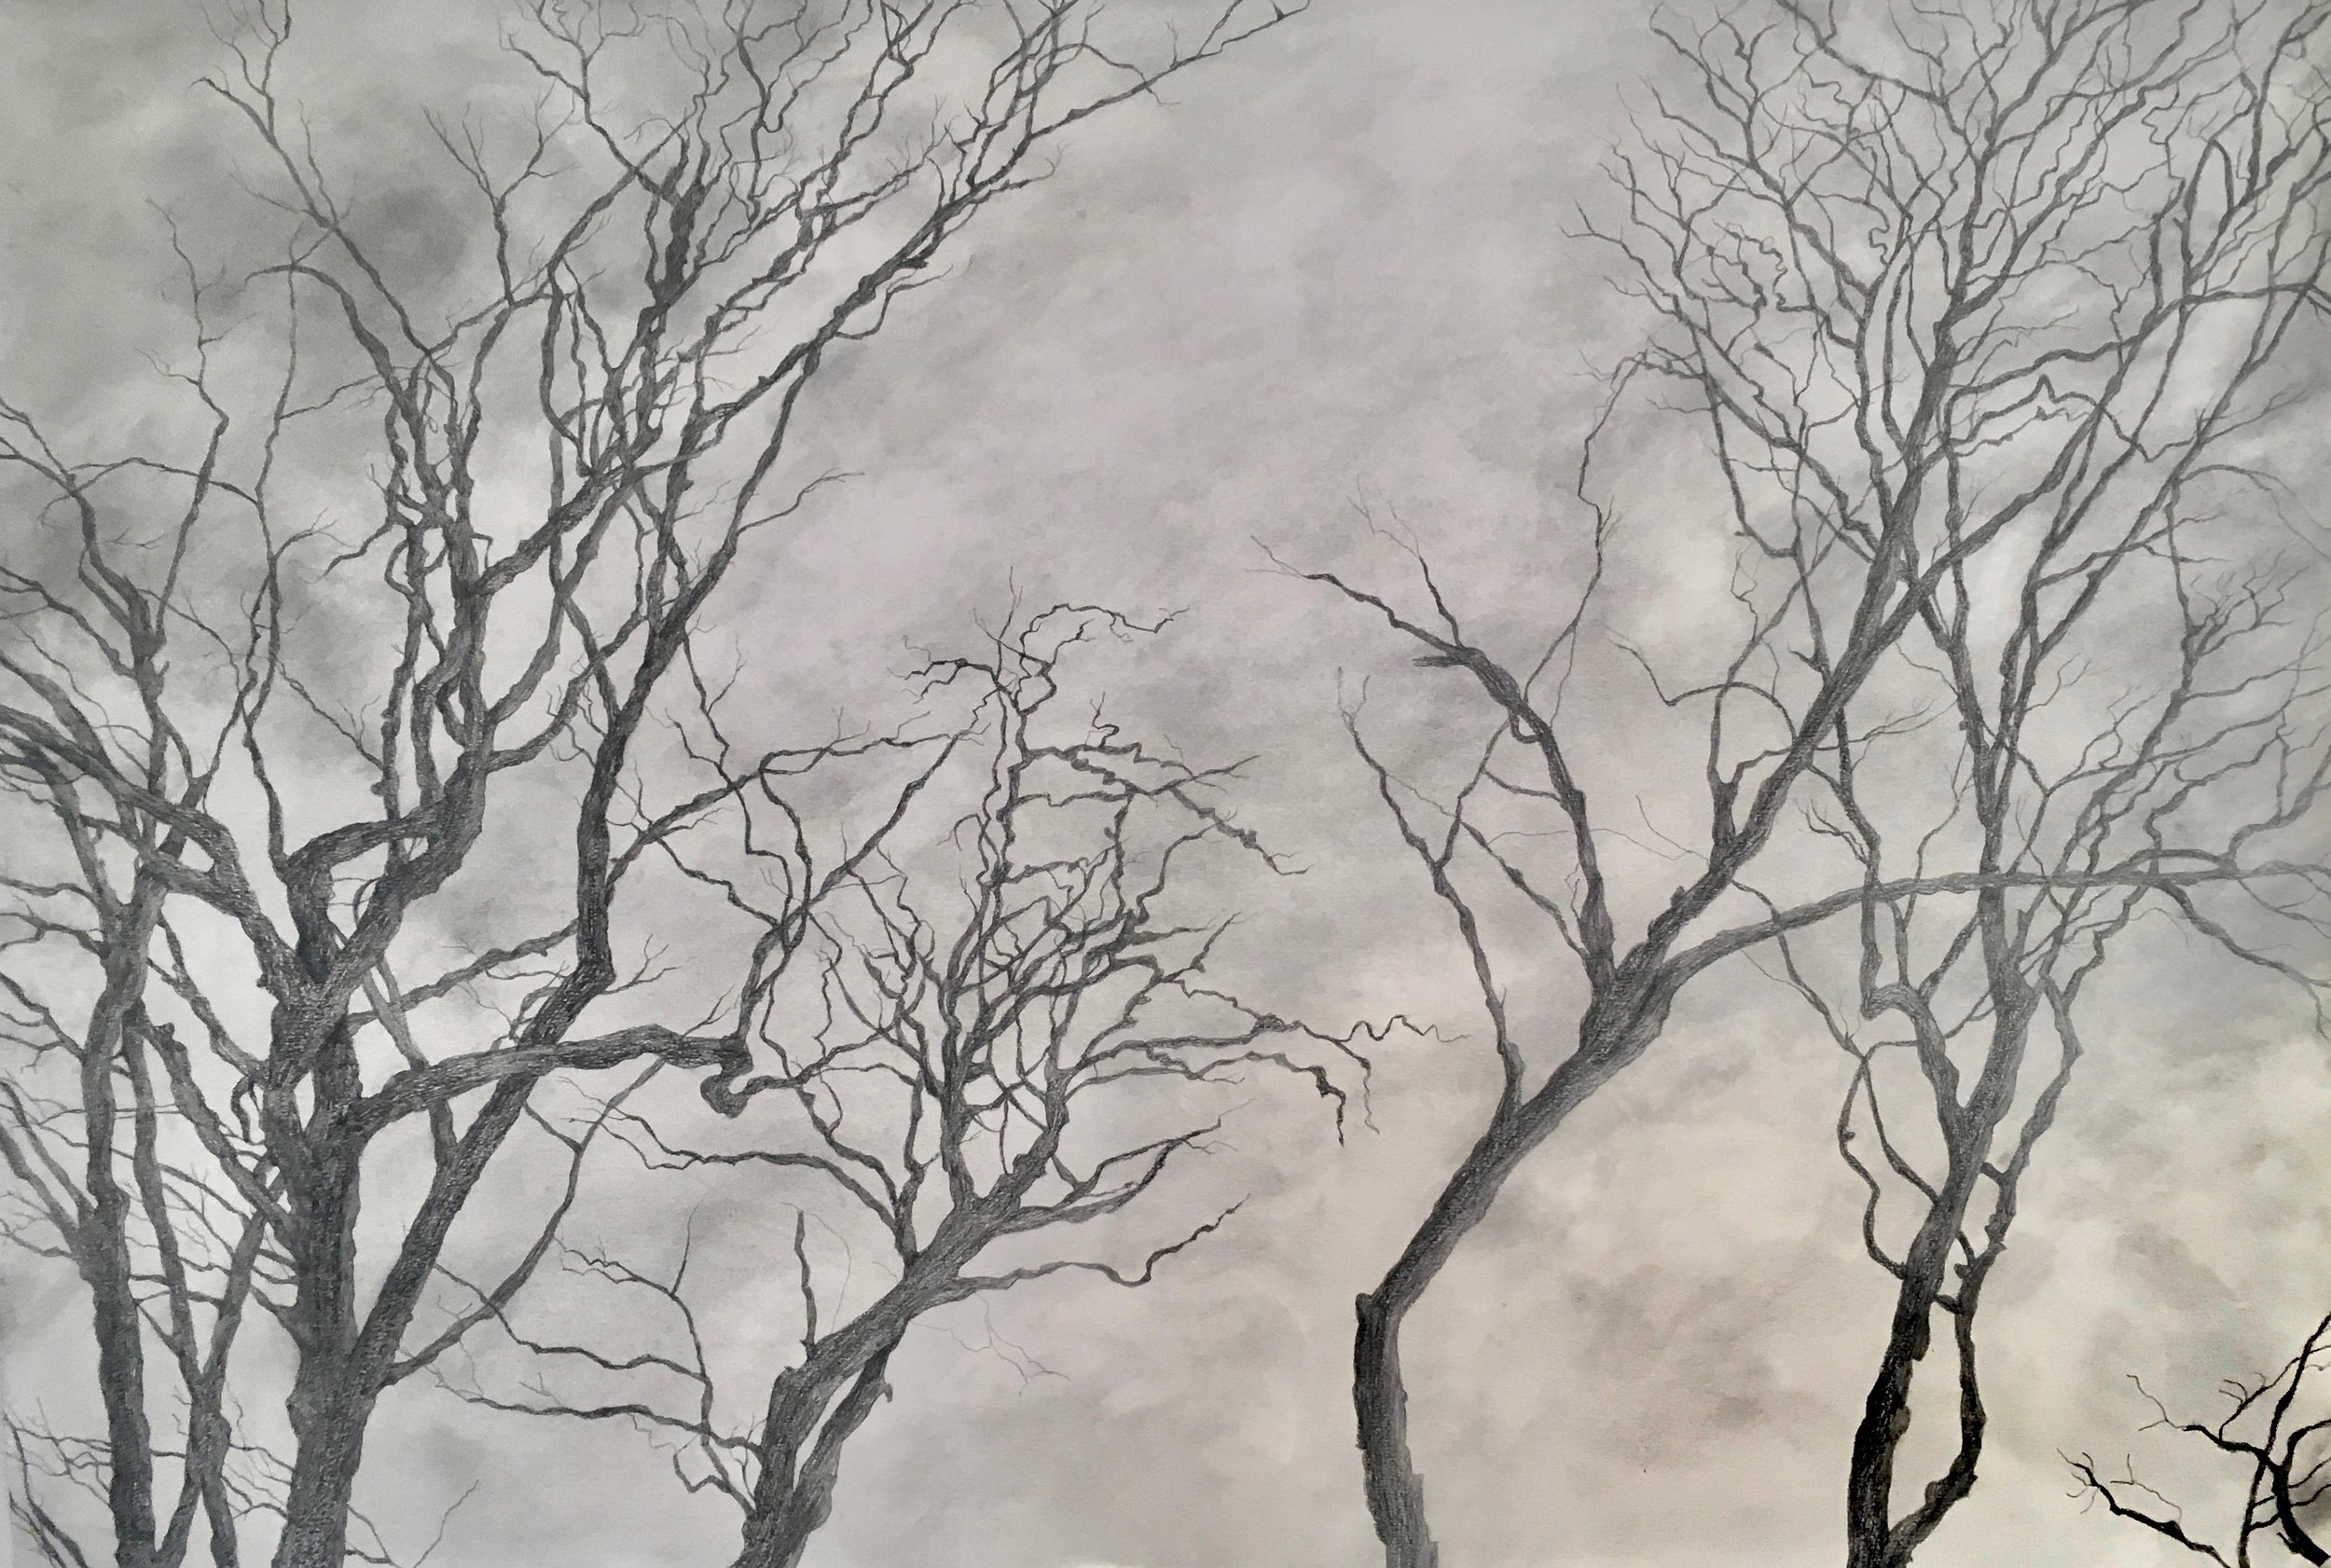 Trees II, 2019, graphite on paper, 44 x 27 in, $3,700